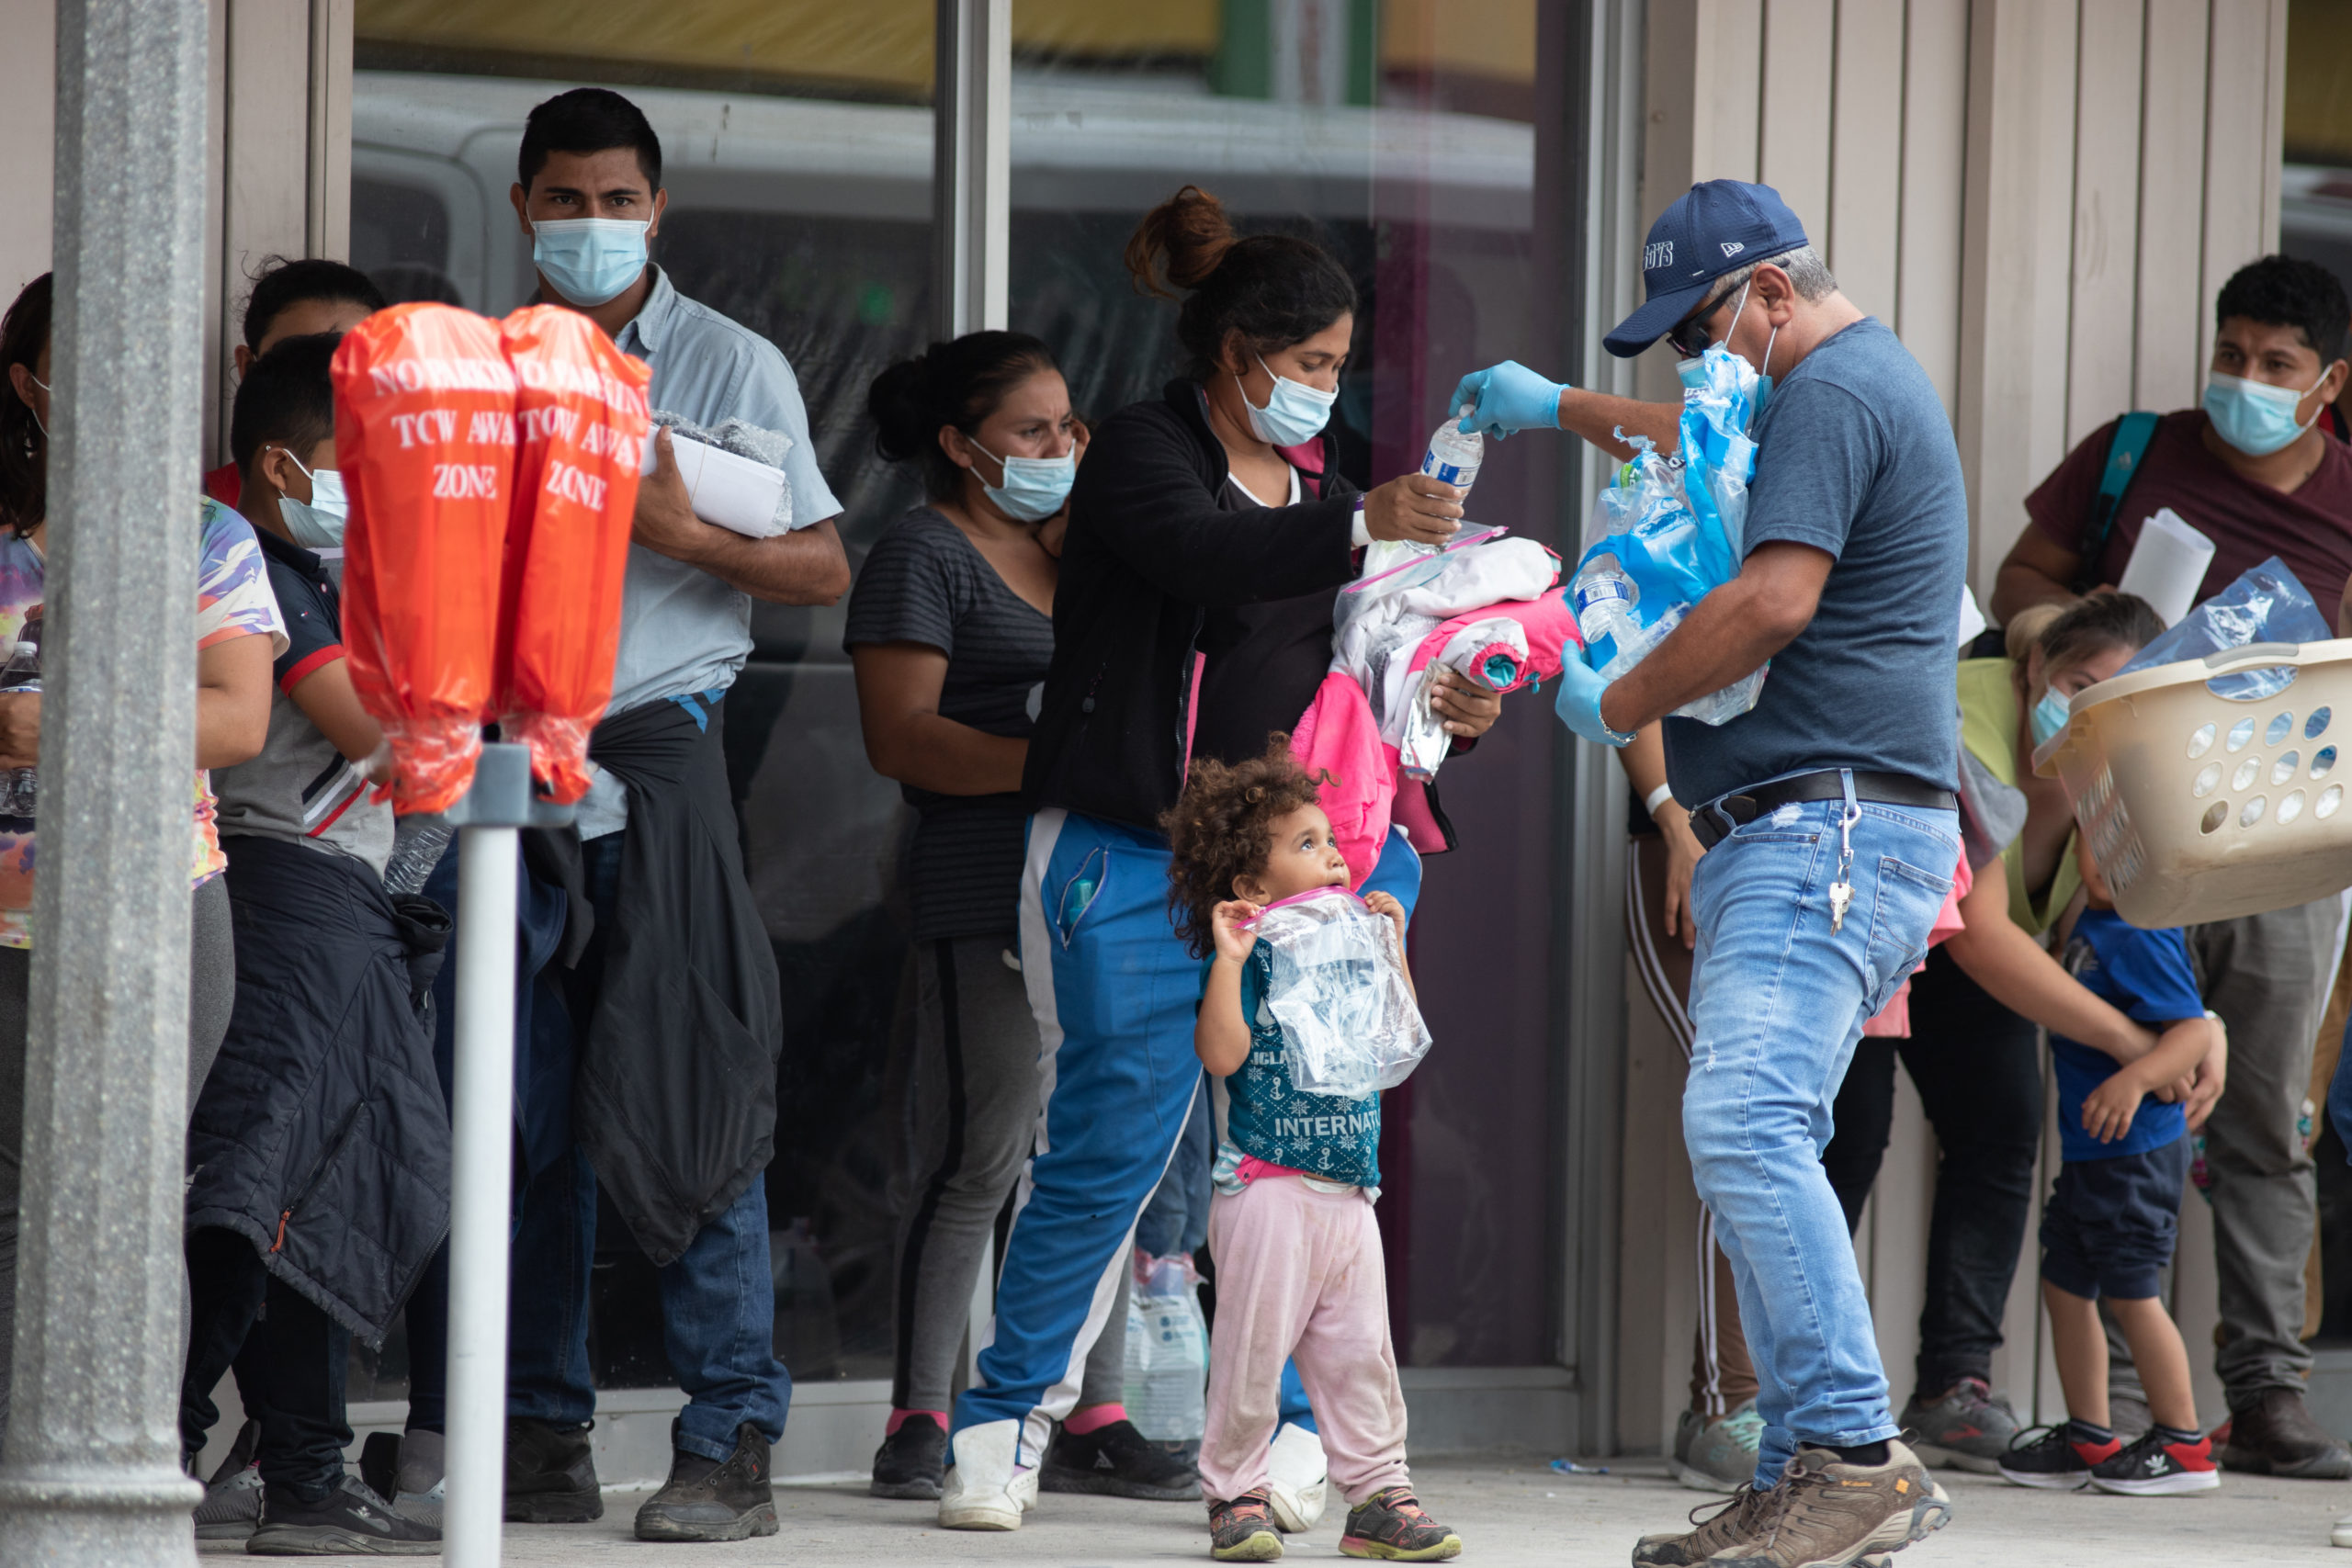 A group of at least 100 migrants waited outside a COVID-19 testing center after being released from federal custody in downtown McAllen, Texas, on August 6, 2021. (Kaylee Greenlee - Daily Caller News Foundation)